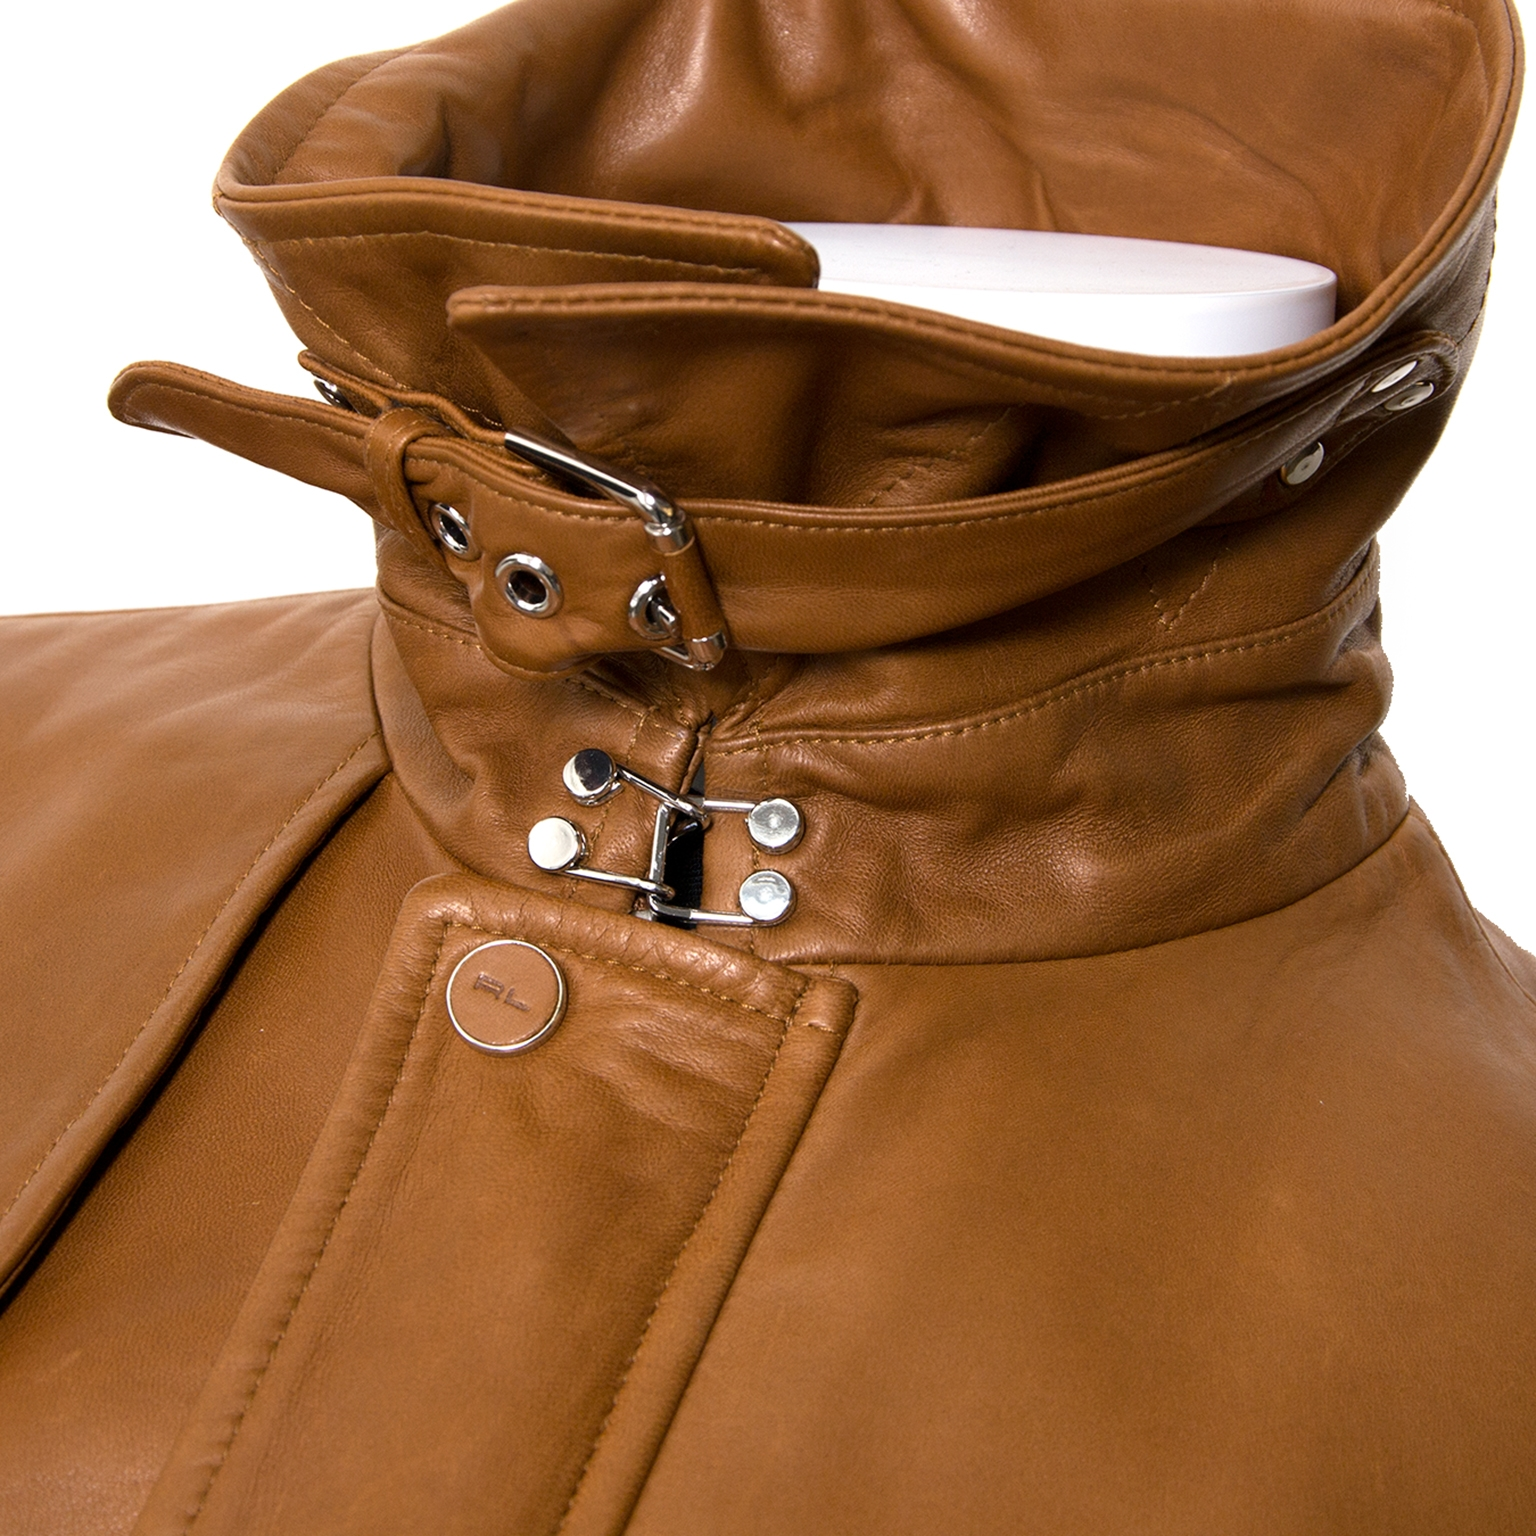 buy Ralph Lauren Cognac Leather Jacket - Size 14 at labellov for the best price